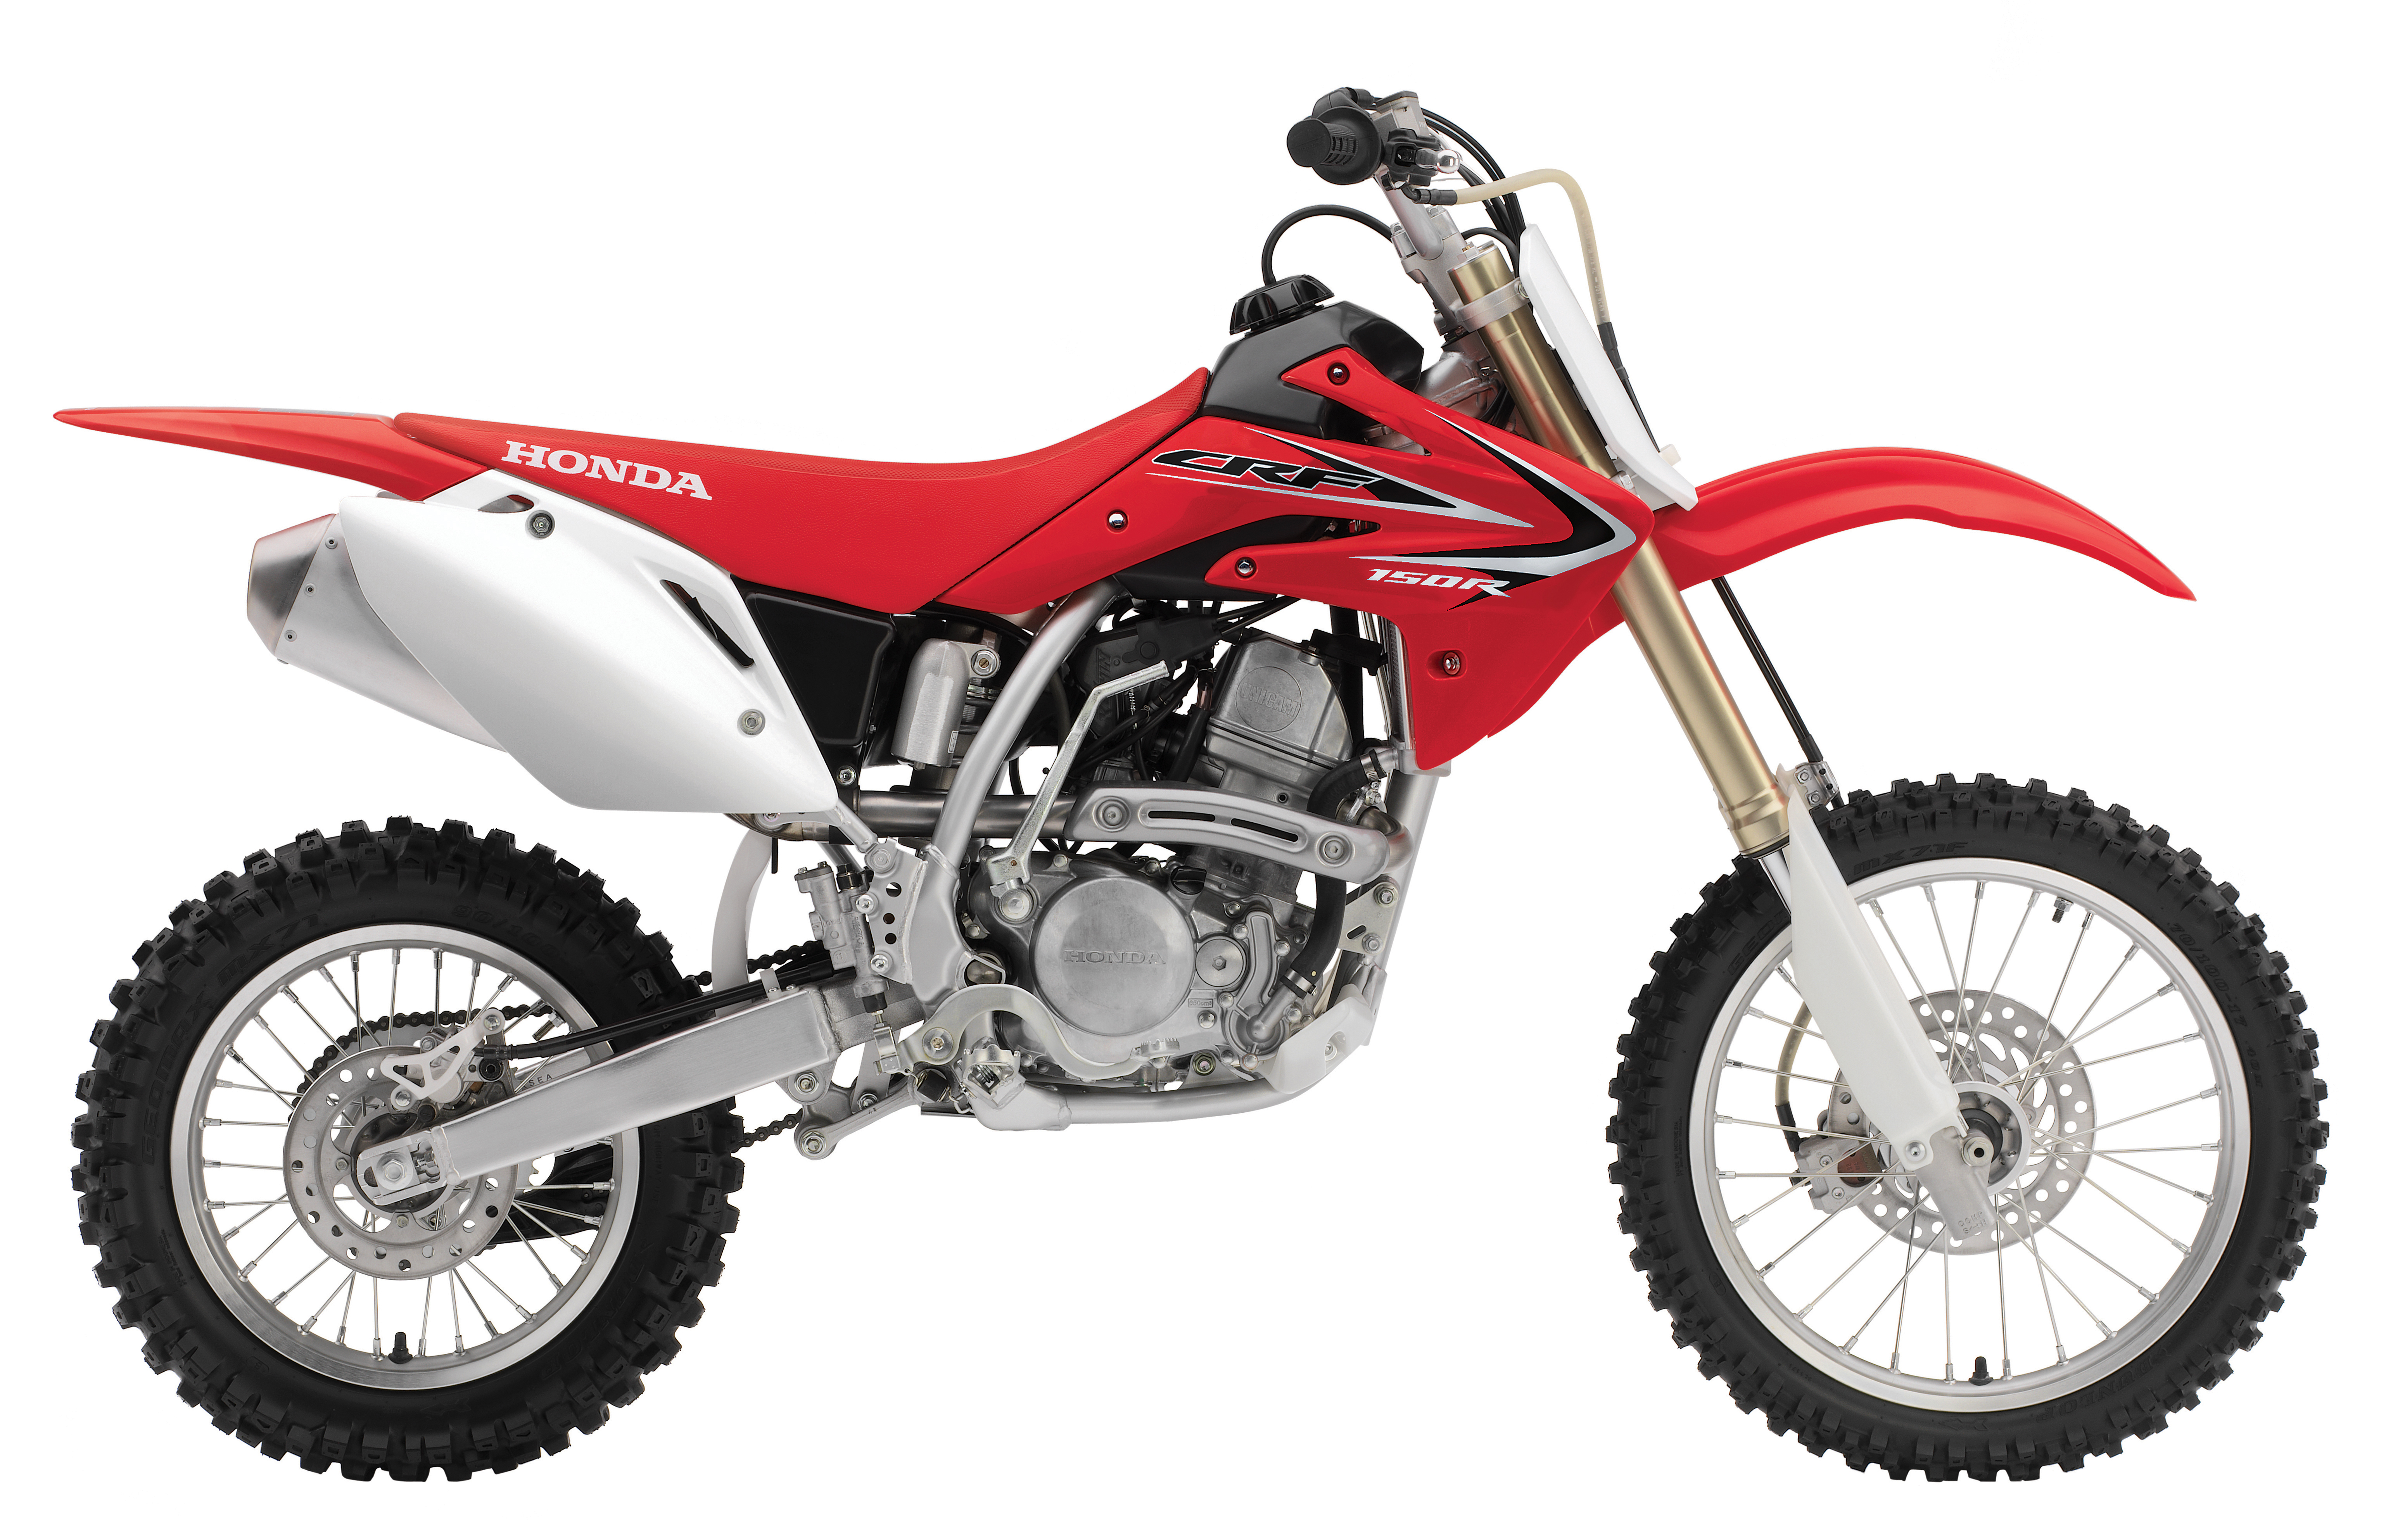 Honda crf150r photo - 1